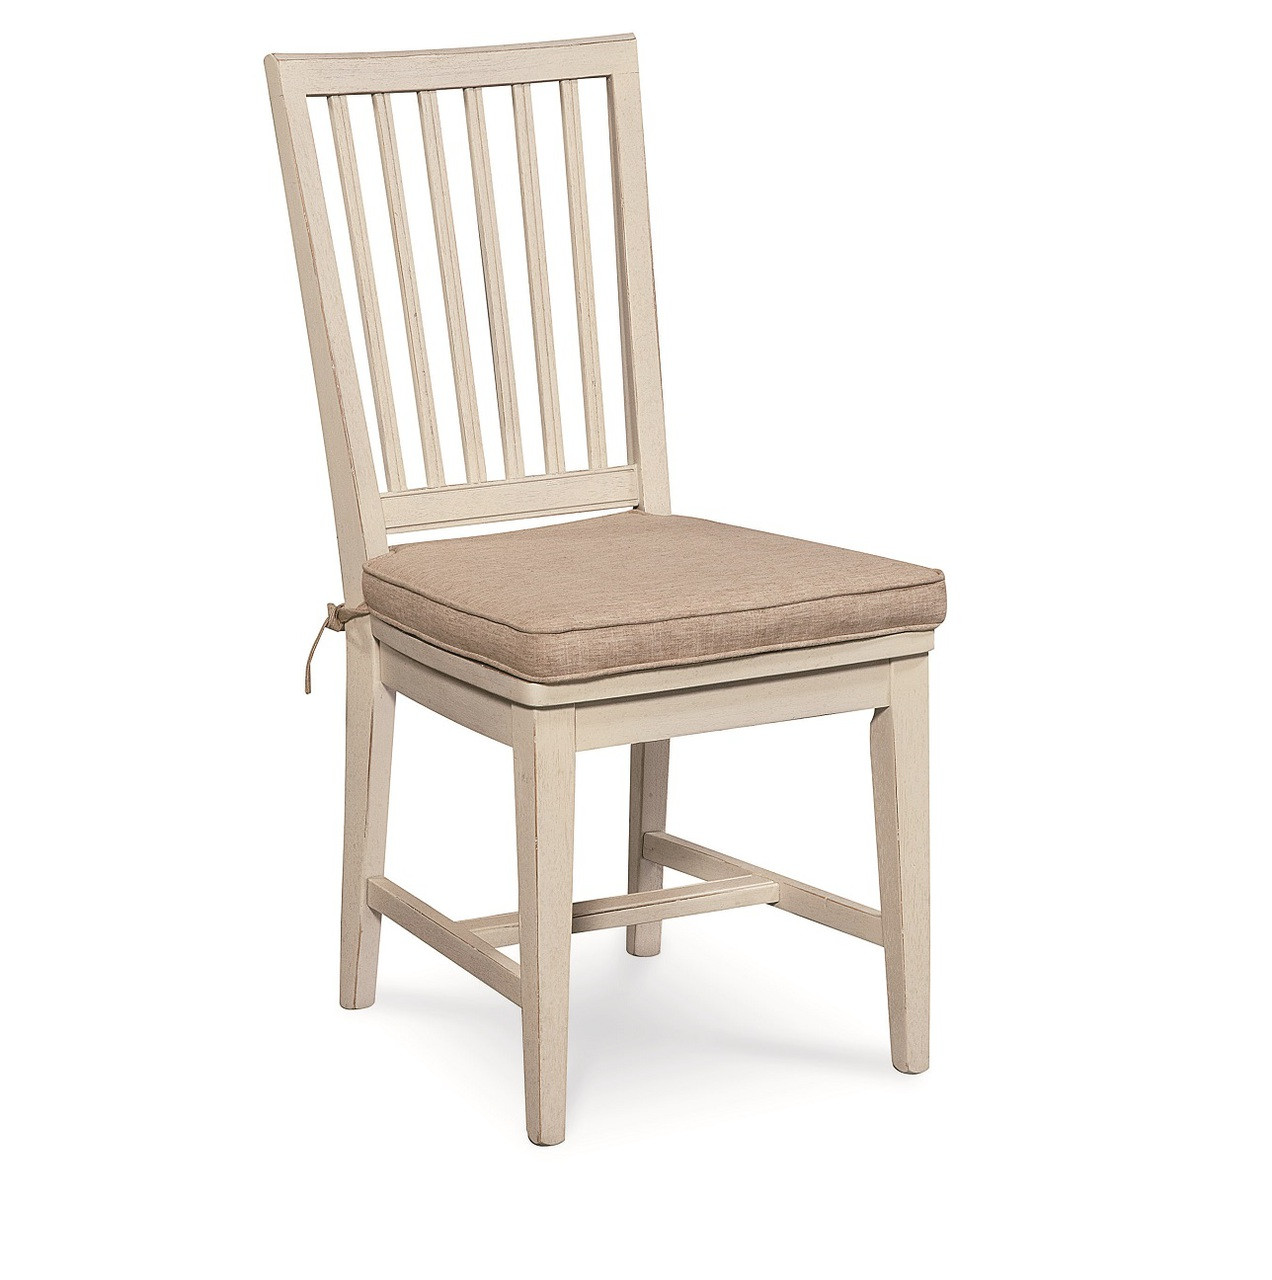 Coastal Beach White Dining Side Chair with Cushion Zin Home : 128732SILO57658144988367912801280 from www.zinhome.com size 1272 x 1280 jpeg 174kB